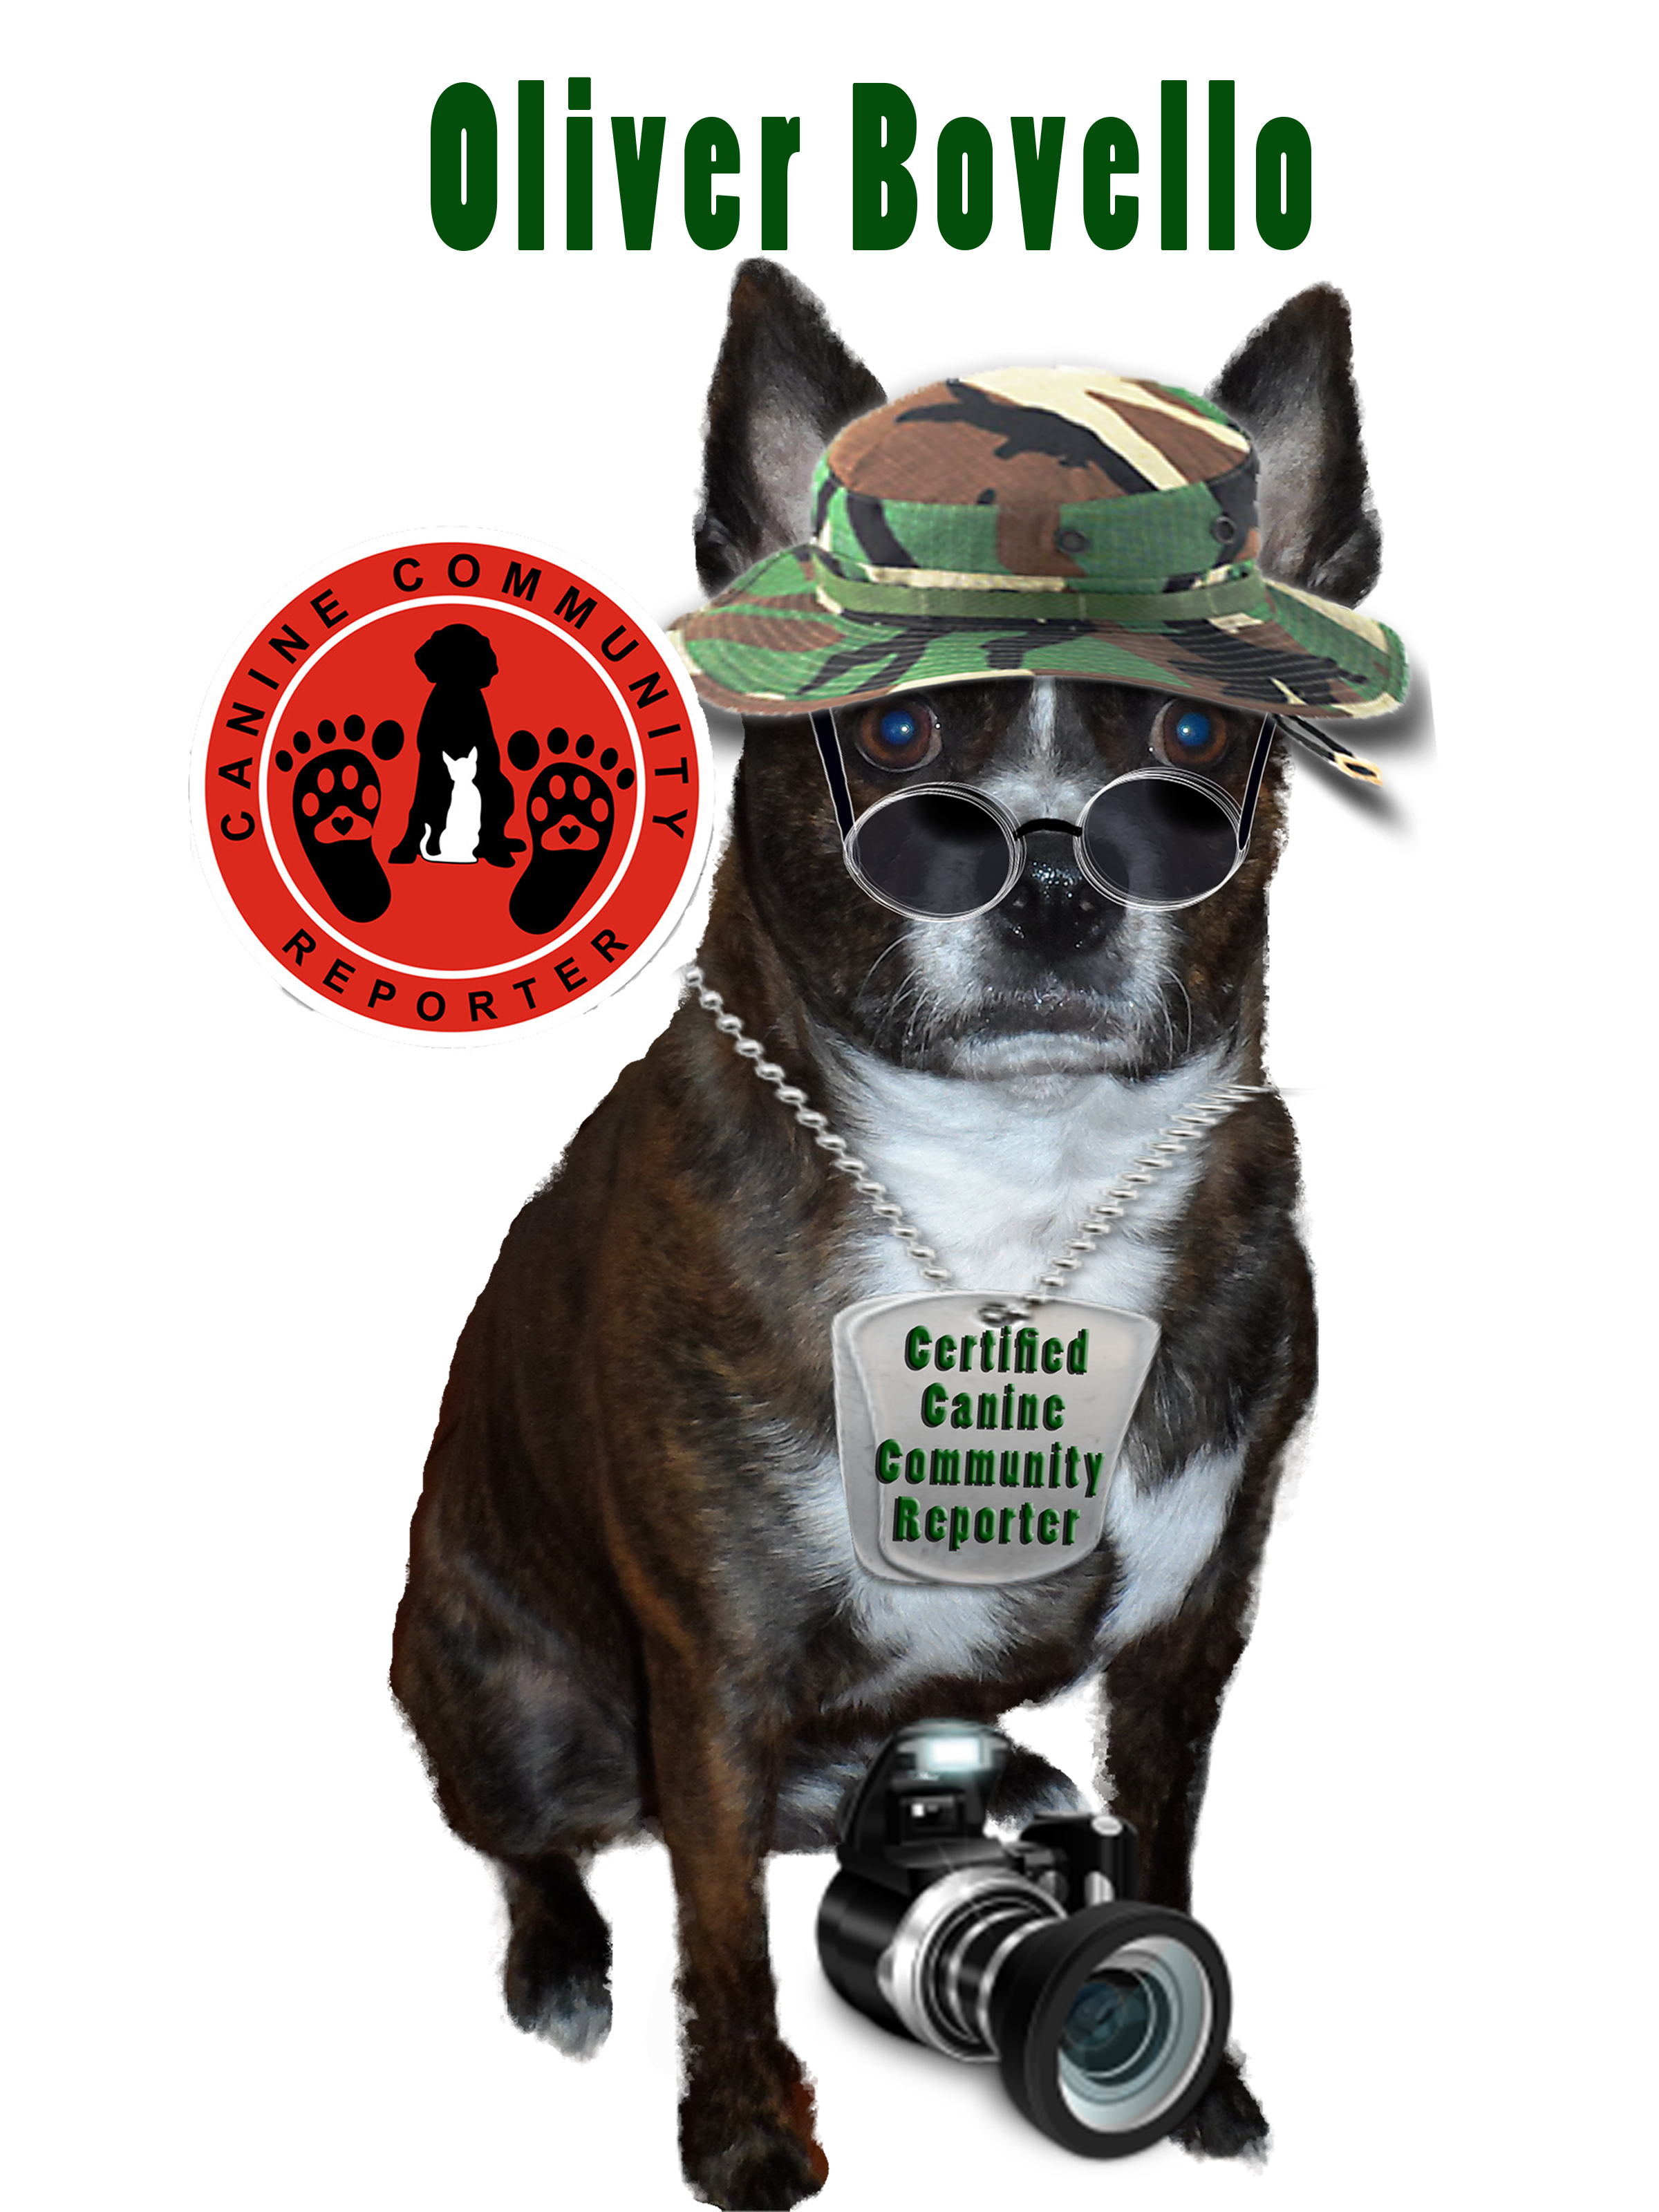 Meet Oliver Bovello, Canine Community Reporter for The Dog Connection TV Network